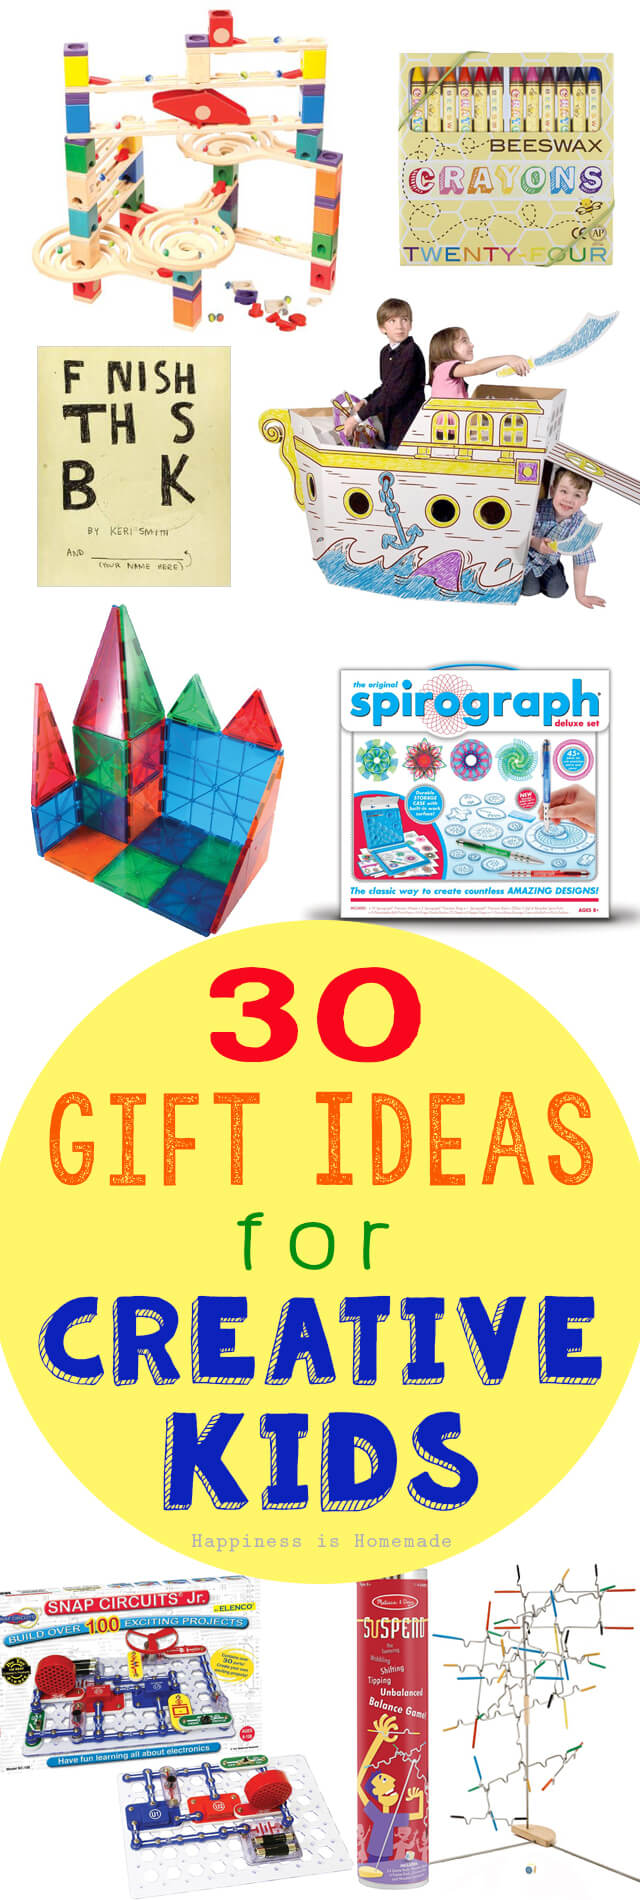 30 Gift Ideas for Creative Kids